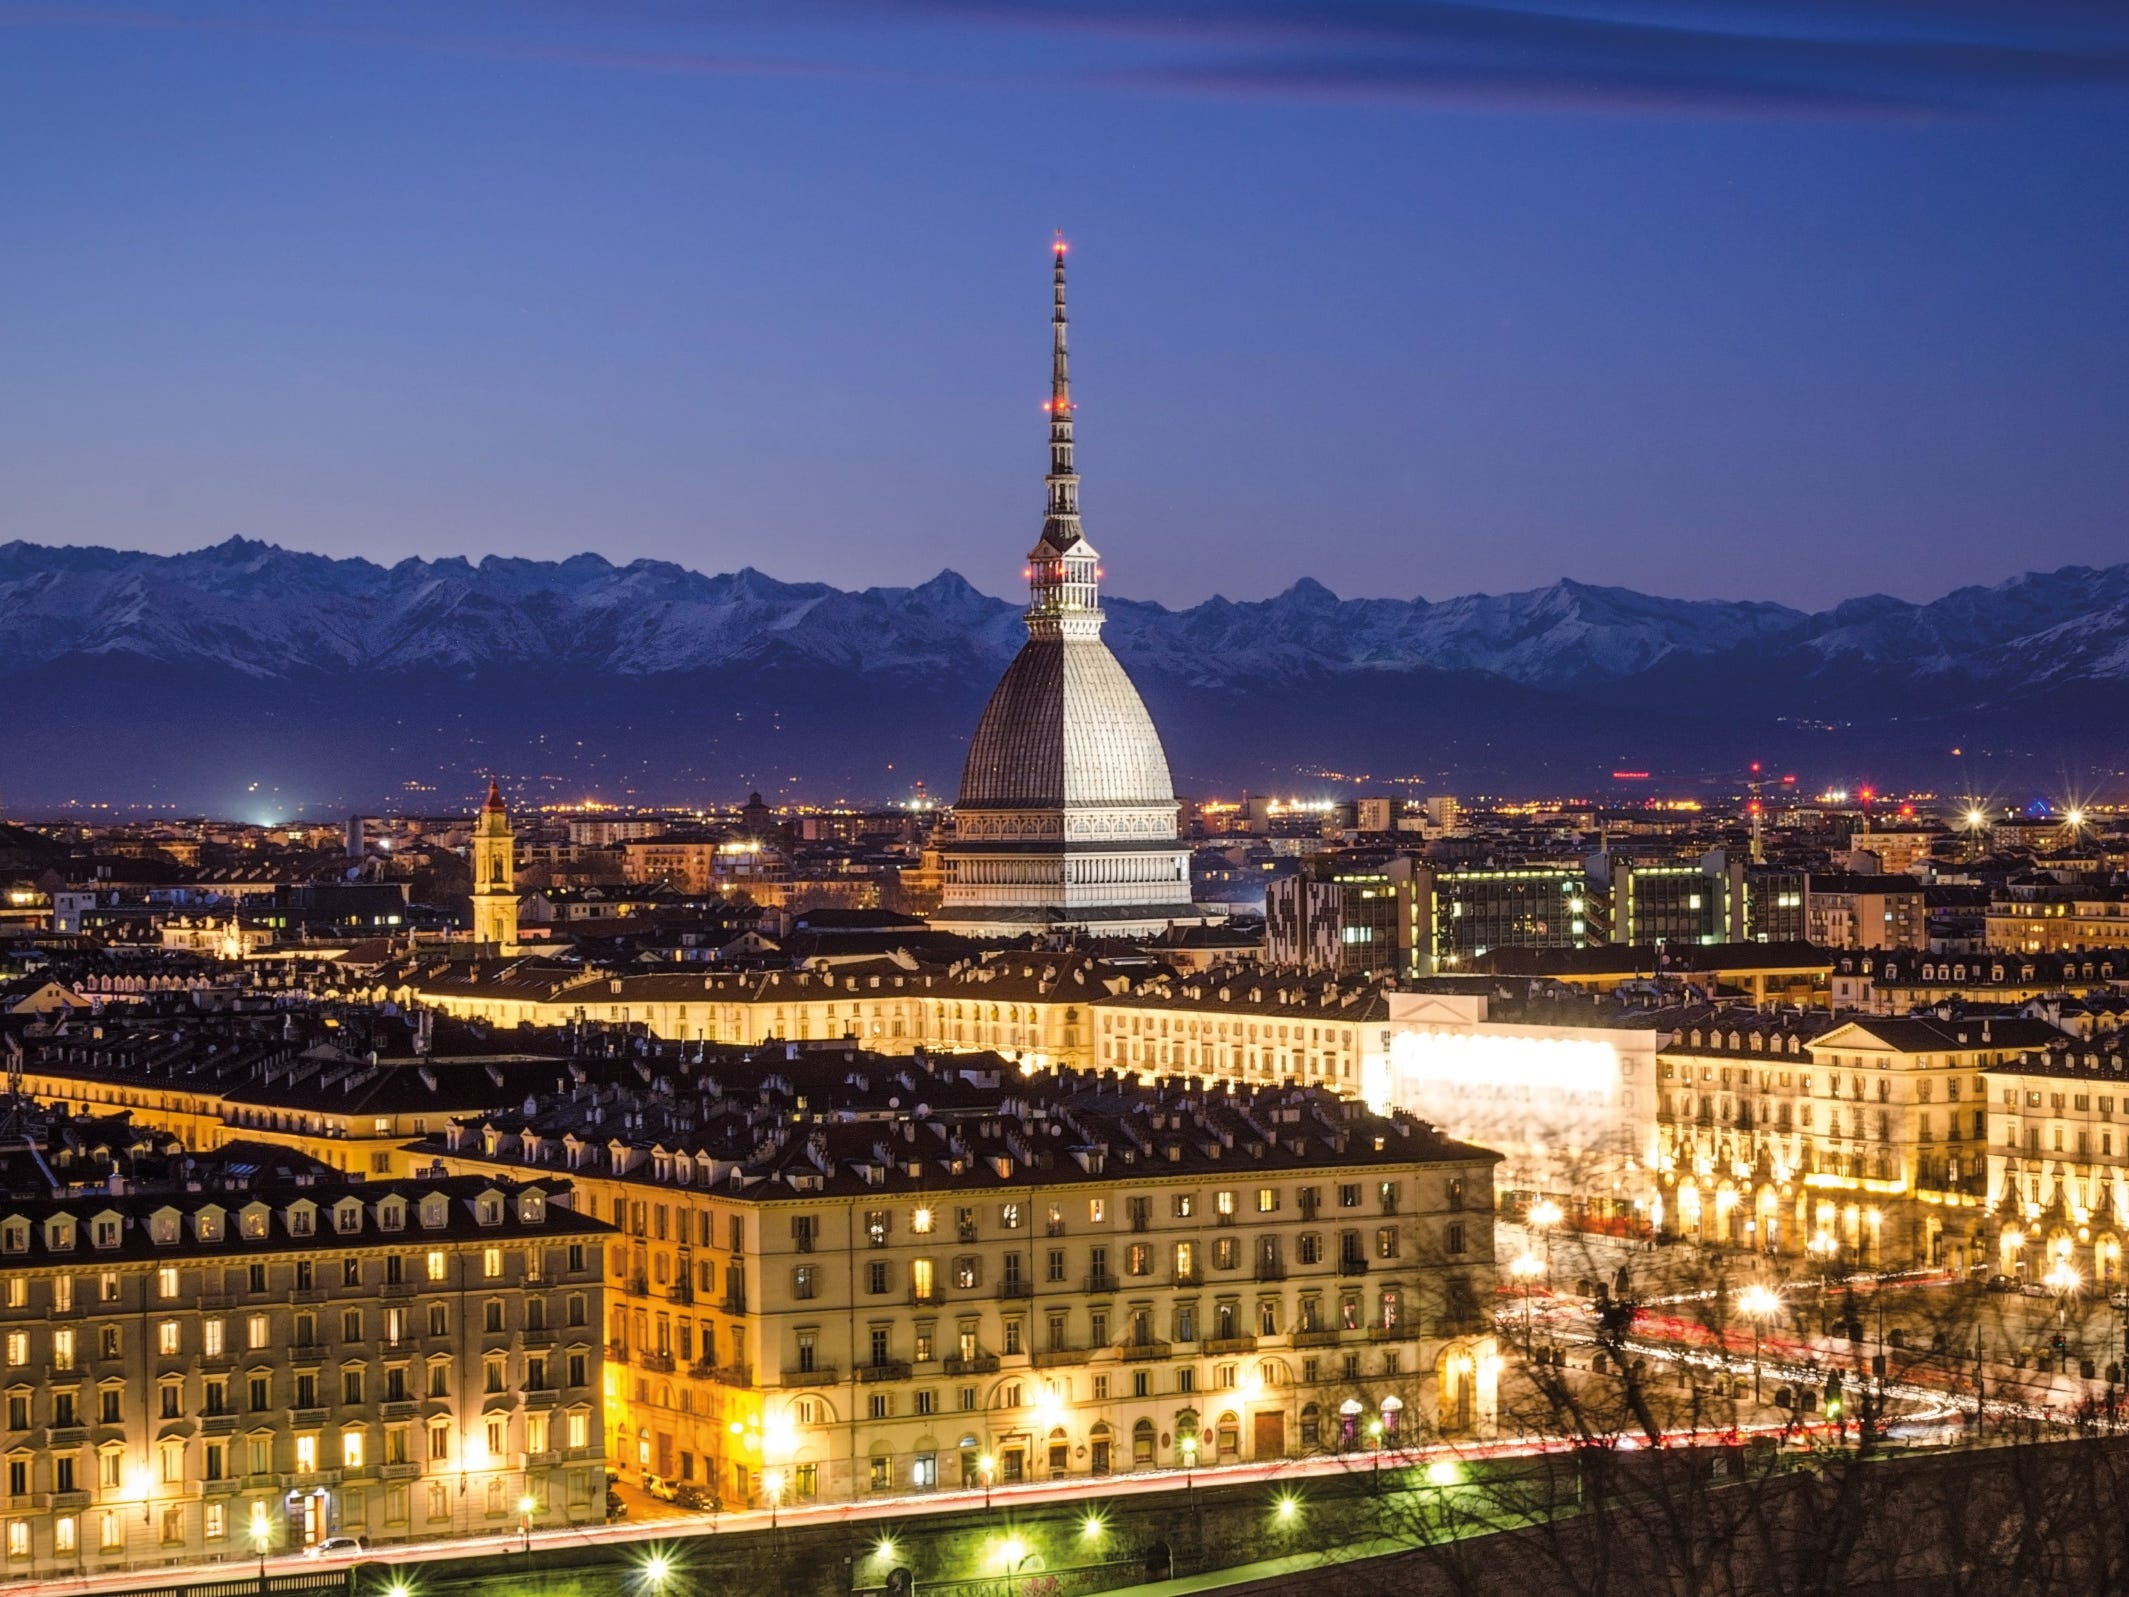 No. 1 on the top 10 list of regions to visit in 2019 is Piedmont, Italy. Drink in this region's optimistic, forward-looking energy while eating yourself silly then walking it off in Italy's oldest national parks or least-trodden Alps.